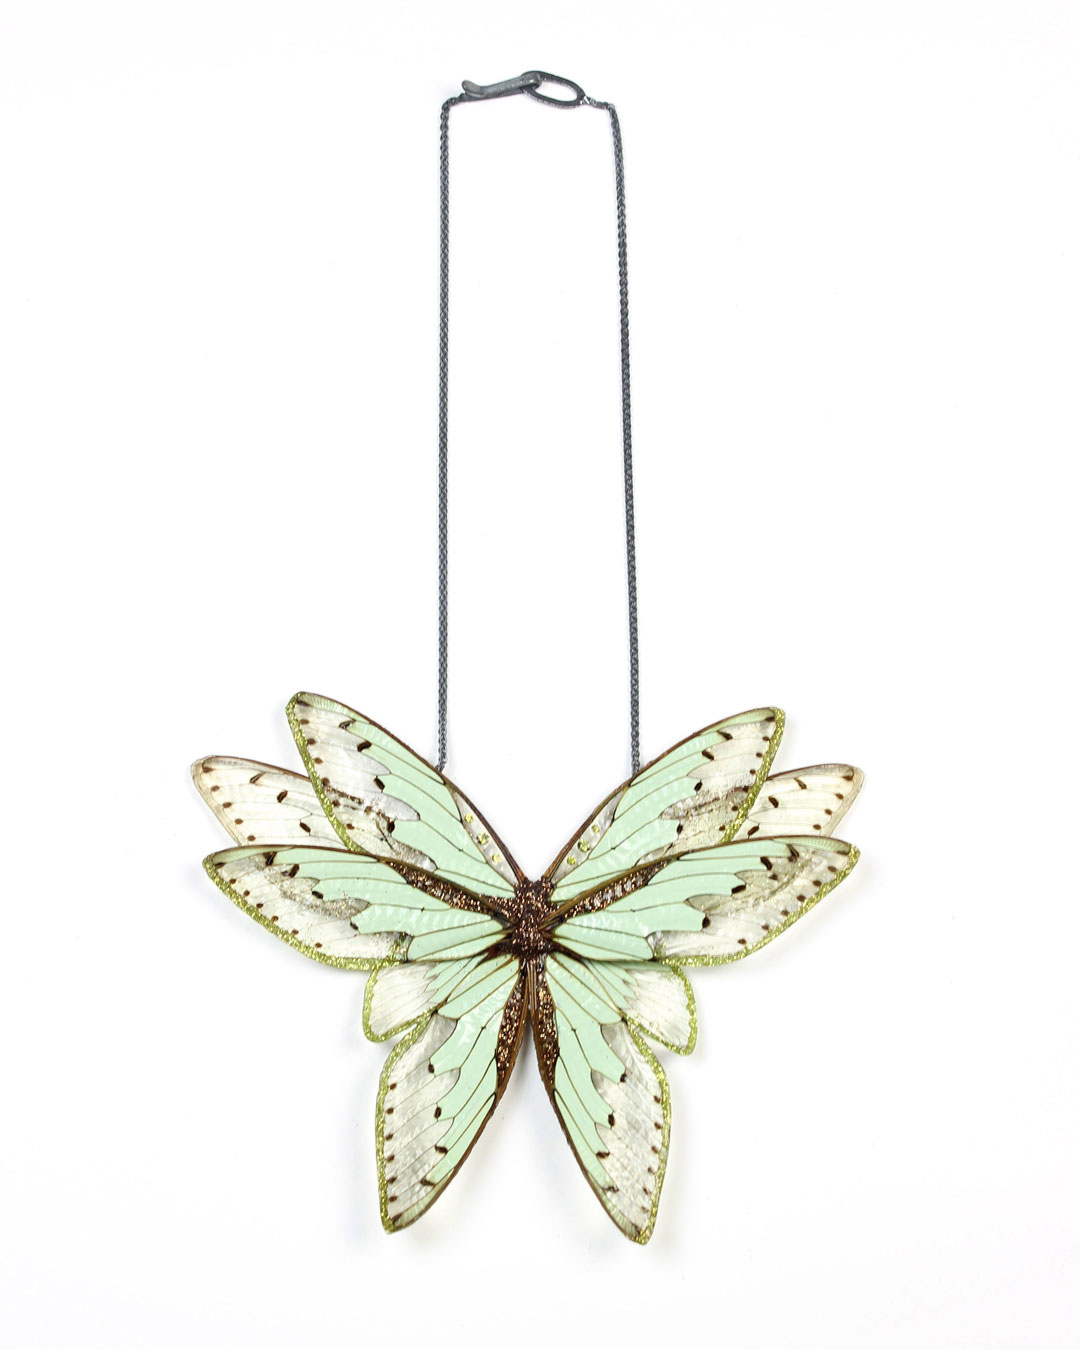 Märta Mattsson, Wings, 2015, necklace; cicadas, resin, pigment, cubic zirconia, lacquer, silver, 300 x 250 x 30 mm, €2420